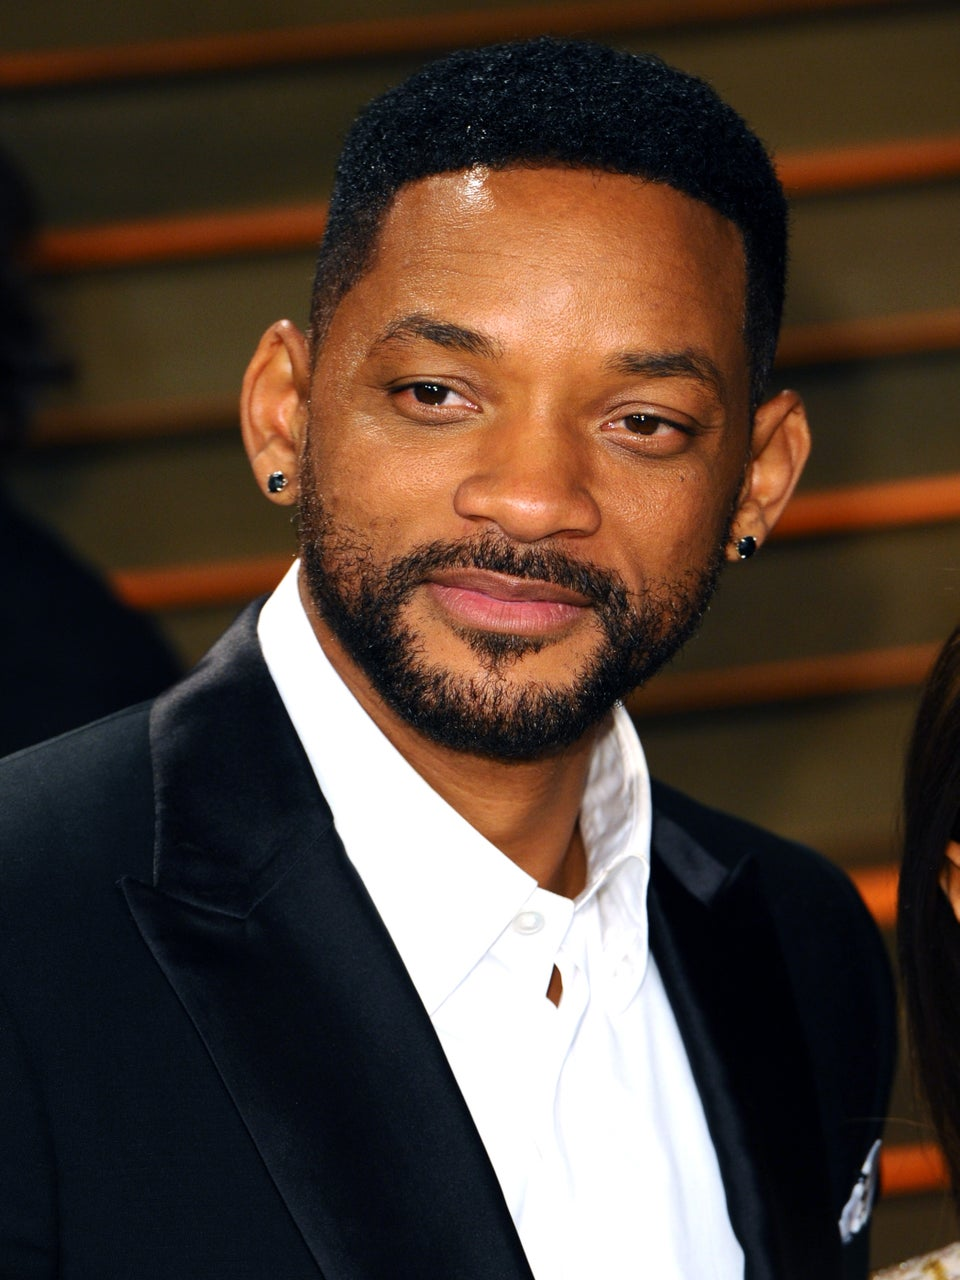 Hear Will Smith's Return to Music After More than a Decade